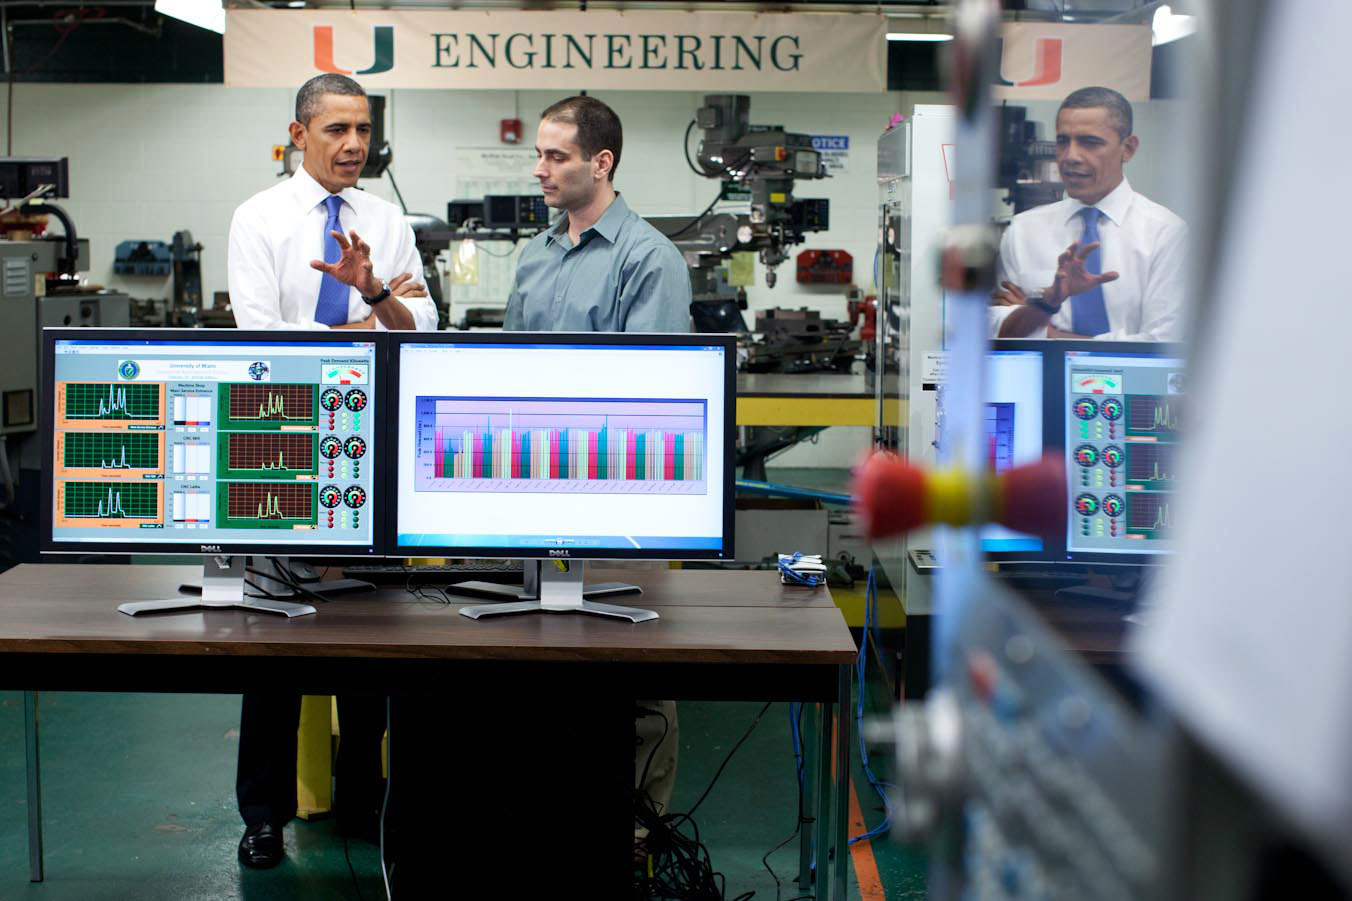 President Barack Obama tours the University of Miami Industrial Assessment Center (February 23, 2012)